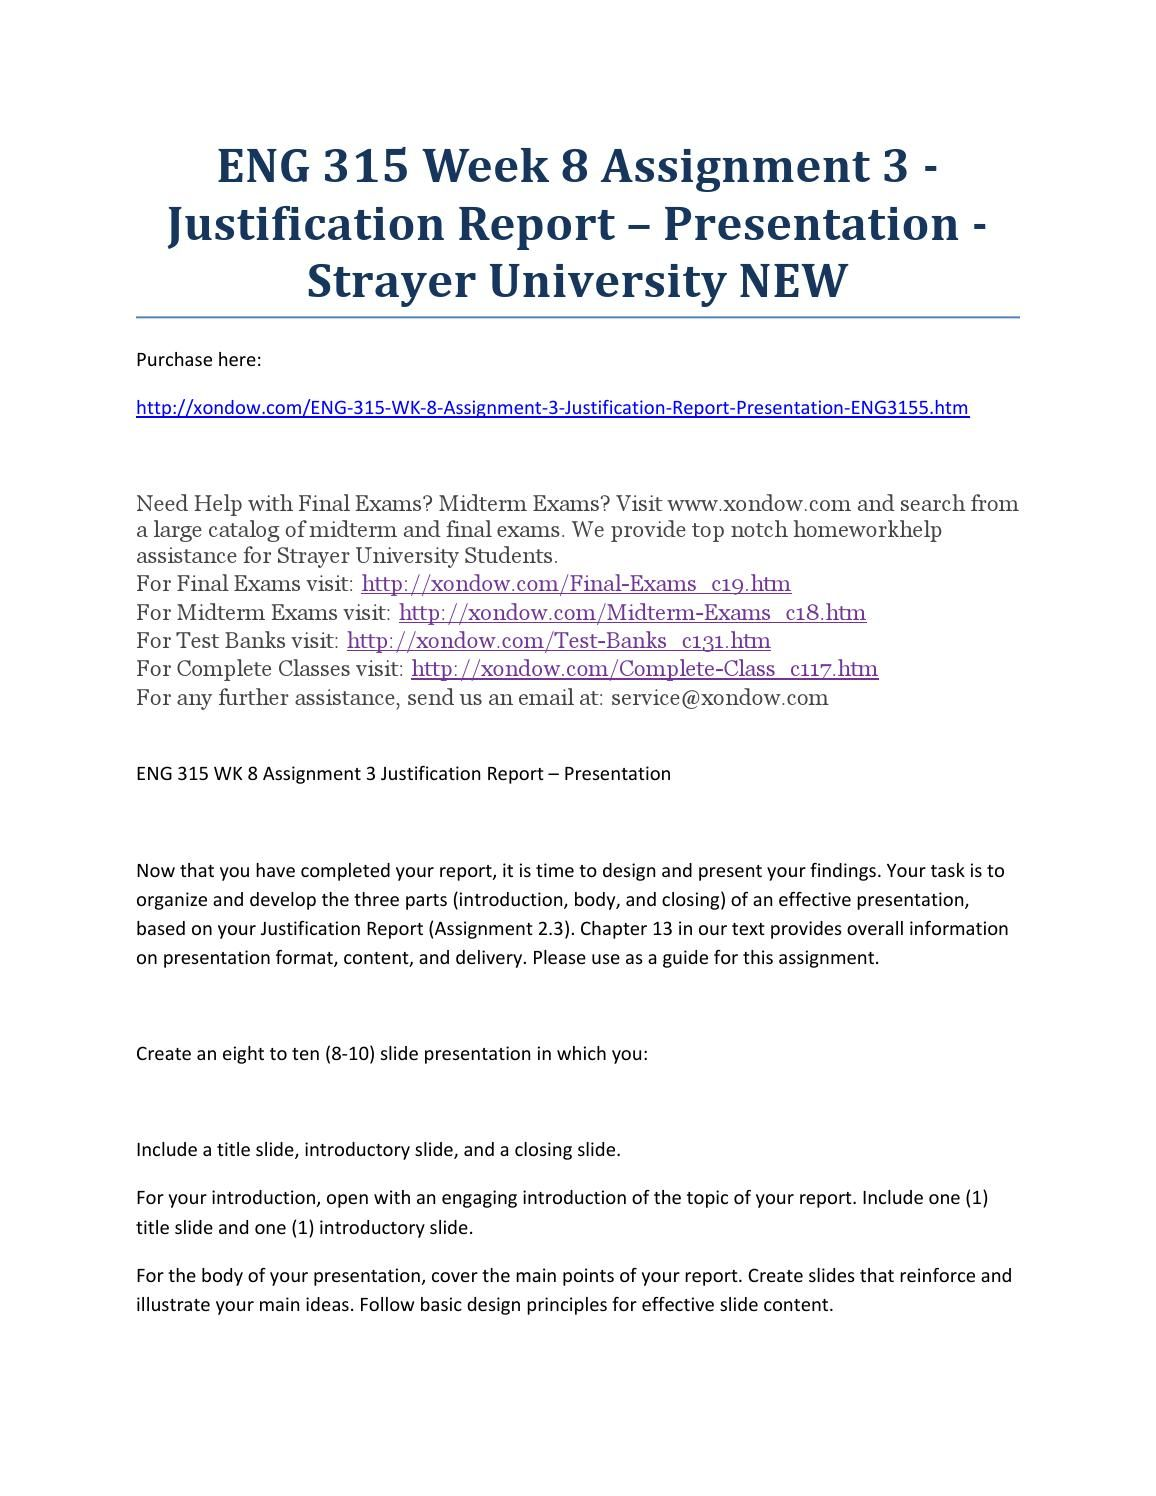 justification report template